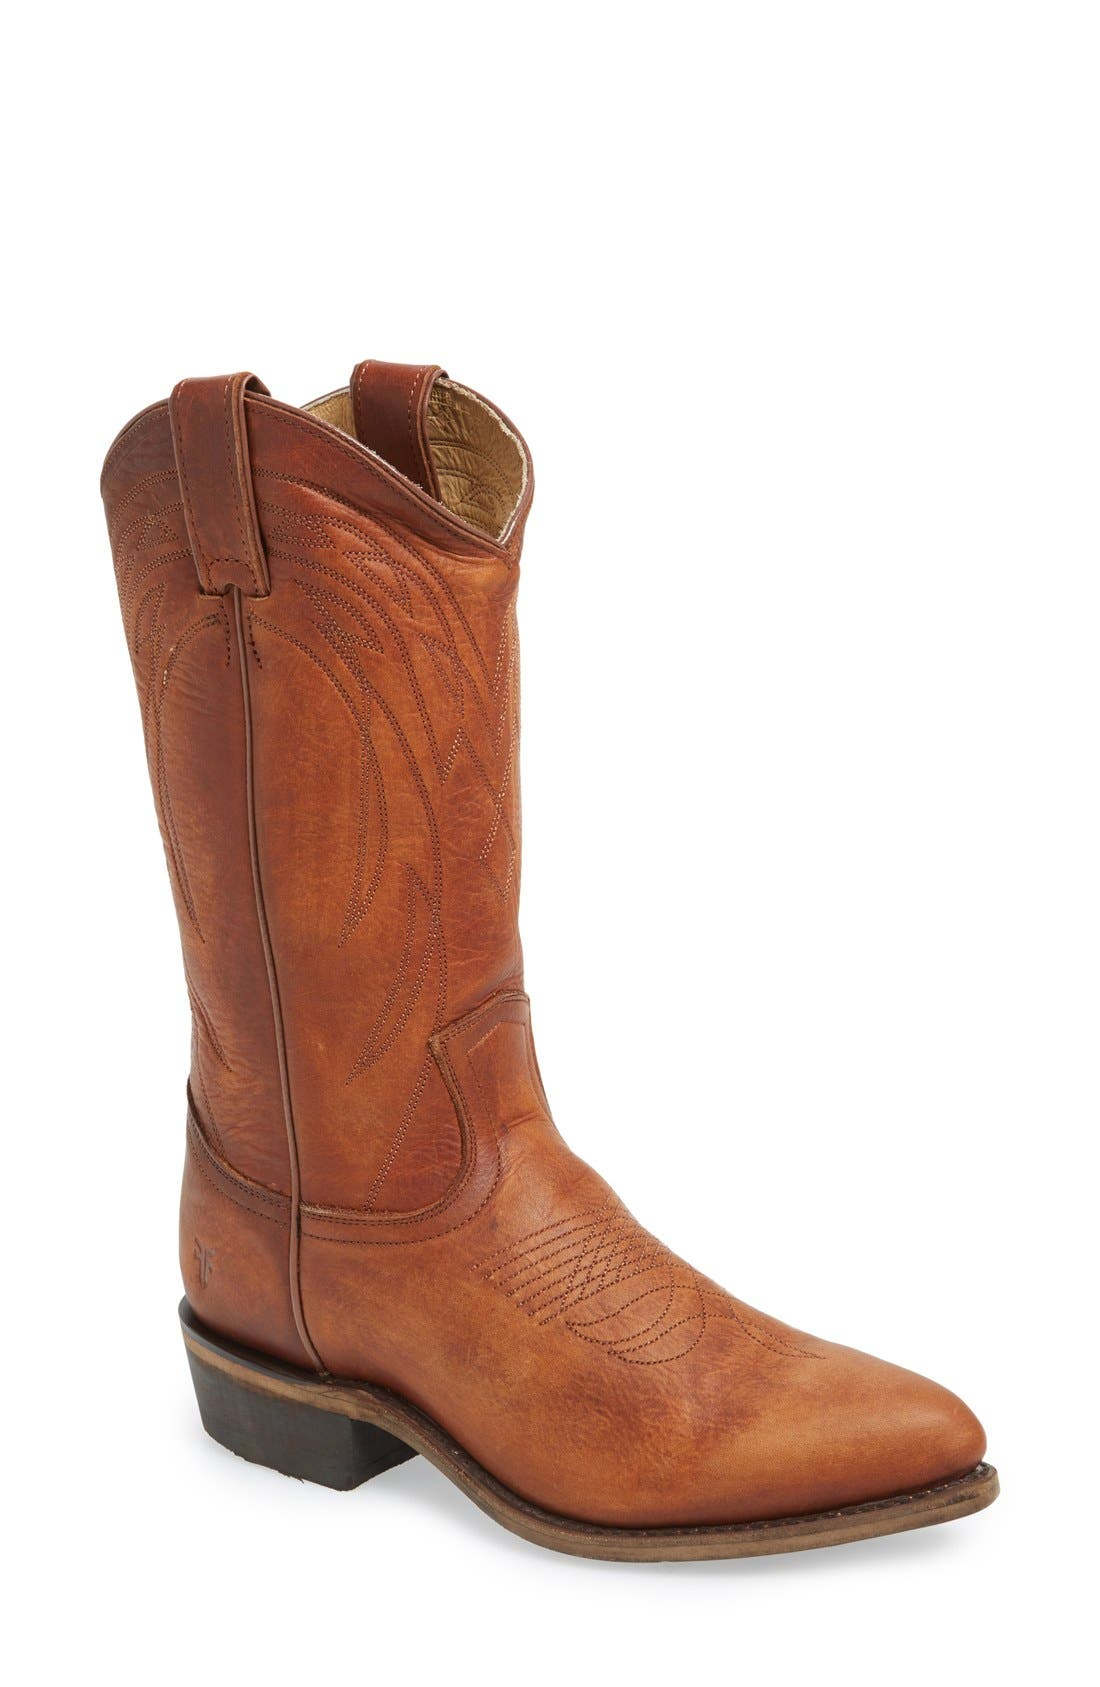 'Billy' Western Boot,                             Main thumbnail 1, color,                             235